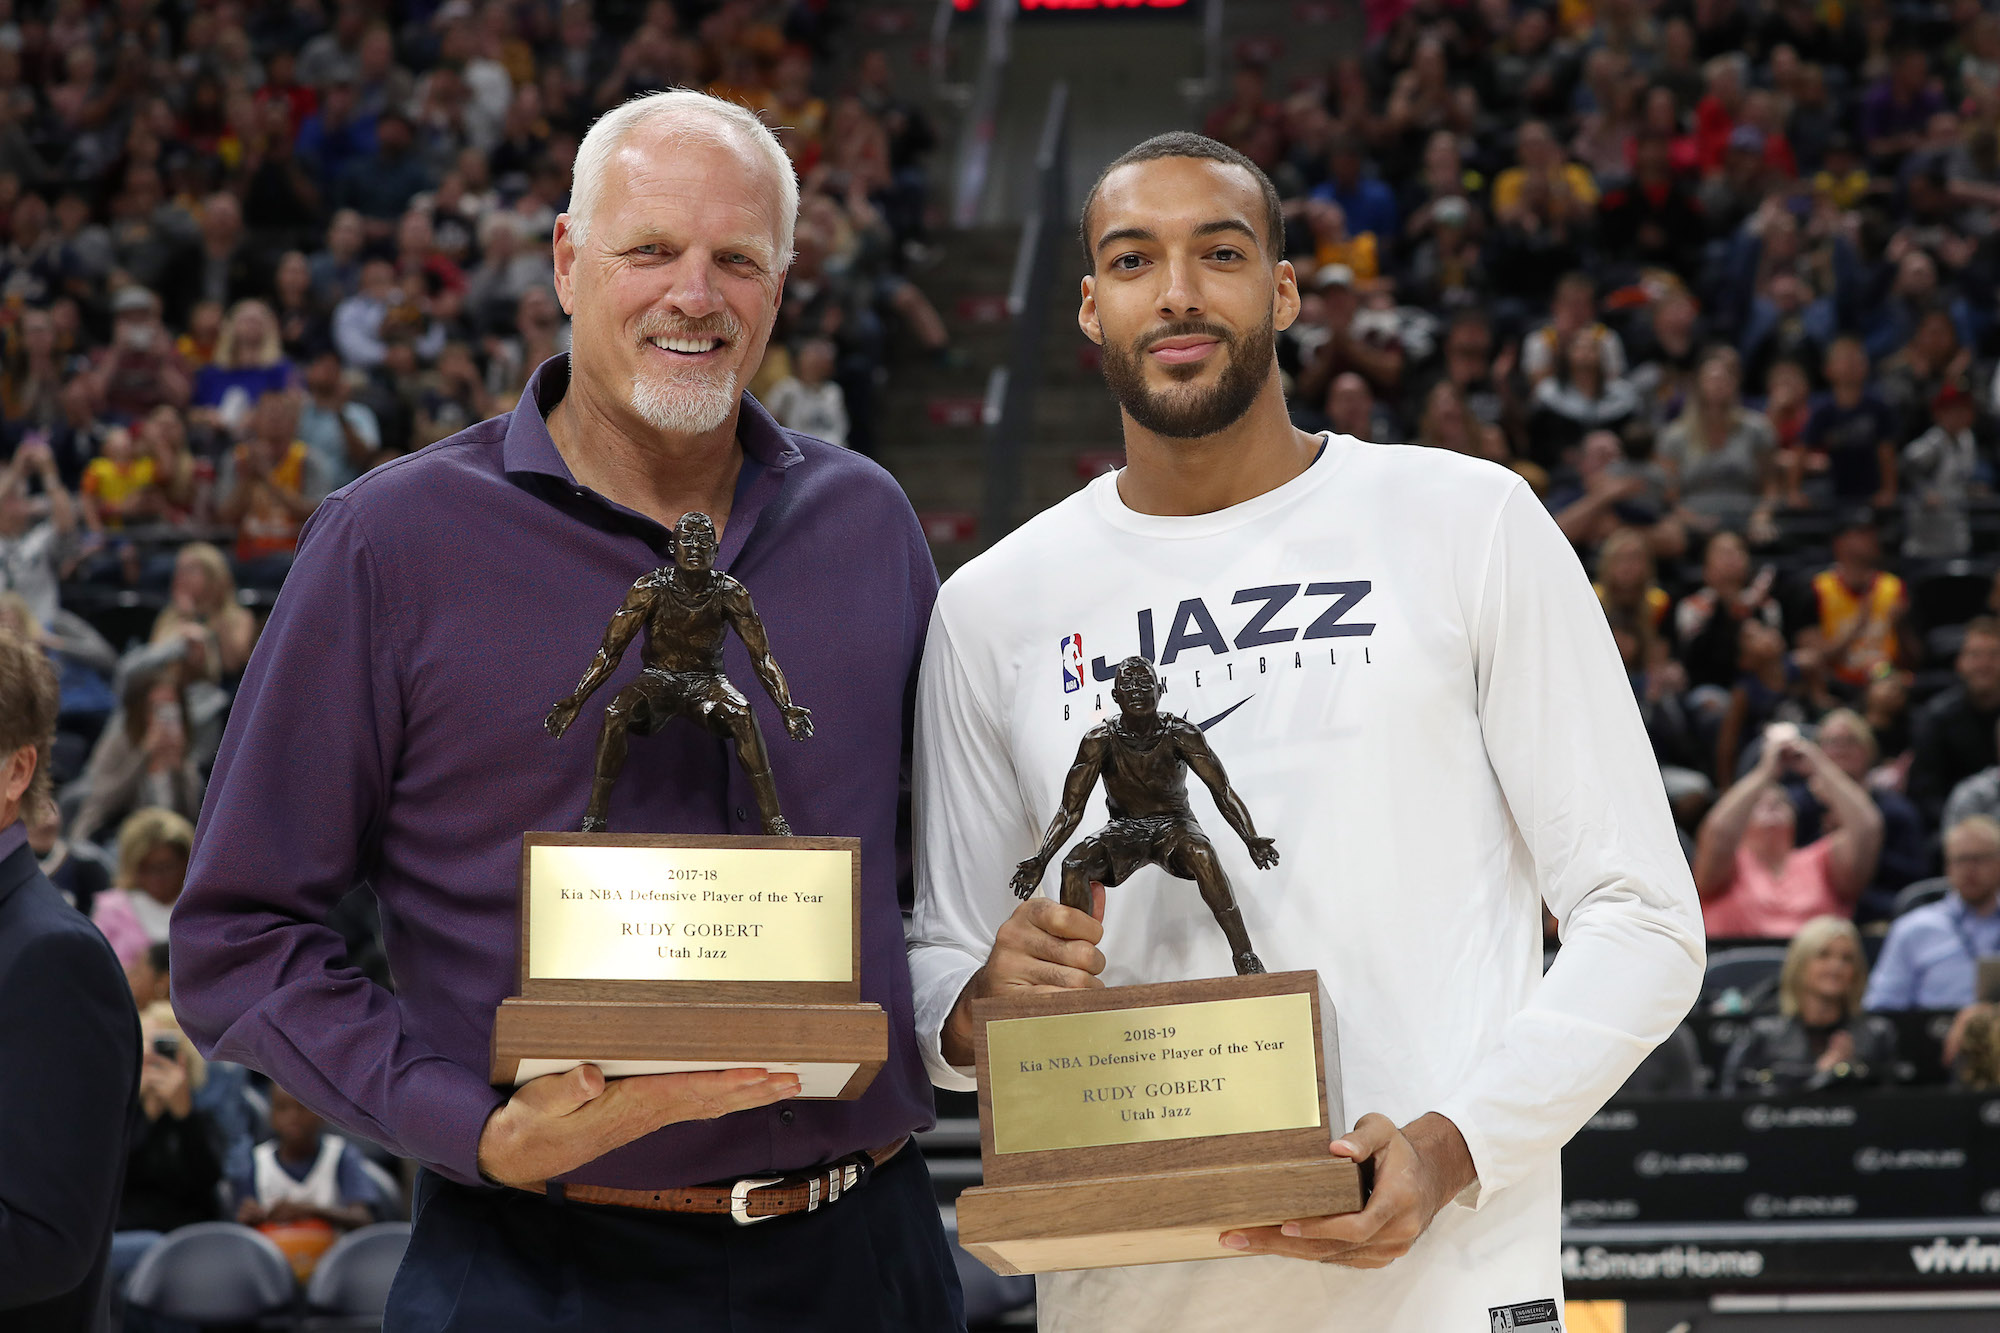 SALT LAKE CITY, UT - OCTOBER 04: Mark Eaton presents Rudy Gobert #27 of the Utah Jazz his defensive player of the year trophy during the meet the team event at vivint.SmartHome Arena on October 04, 2019 in Salt Lake City, Utah. NOTE TO USER: User expressly acknowledges and agrees that, by downloading and or using this Photograph, User is consenting to the terms and conditions of the Getty Images License Agreement. Mandatory Copyright Notice: Copyright 2019 NBAE (Photo by Melissa Majchrzak/NBAE via Getty Images)